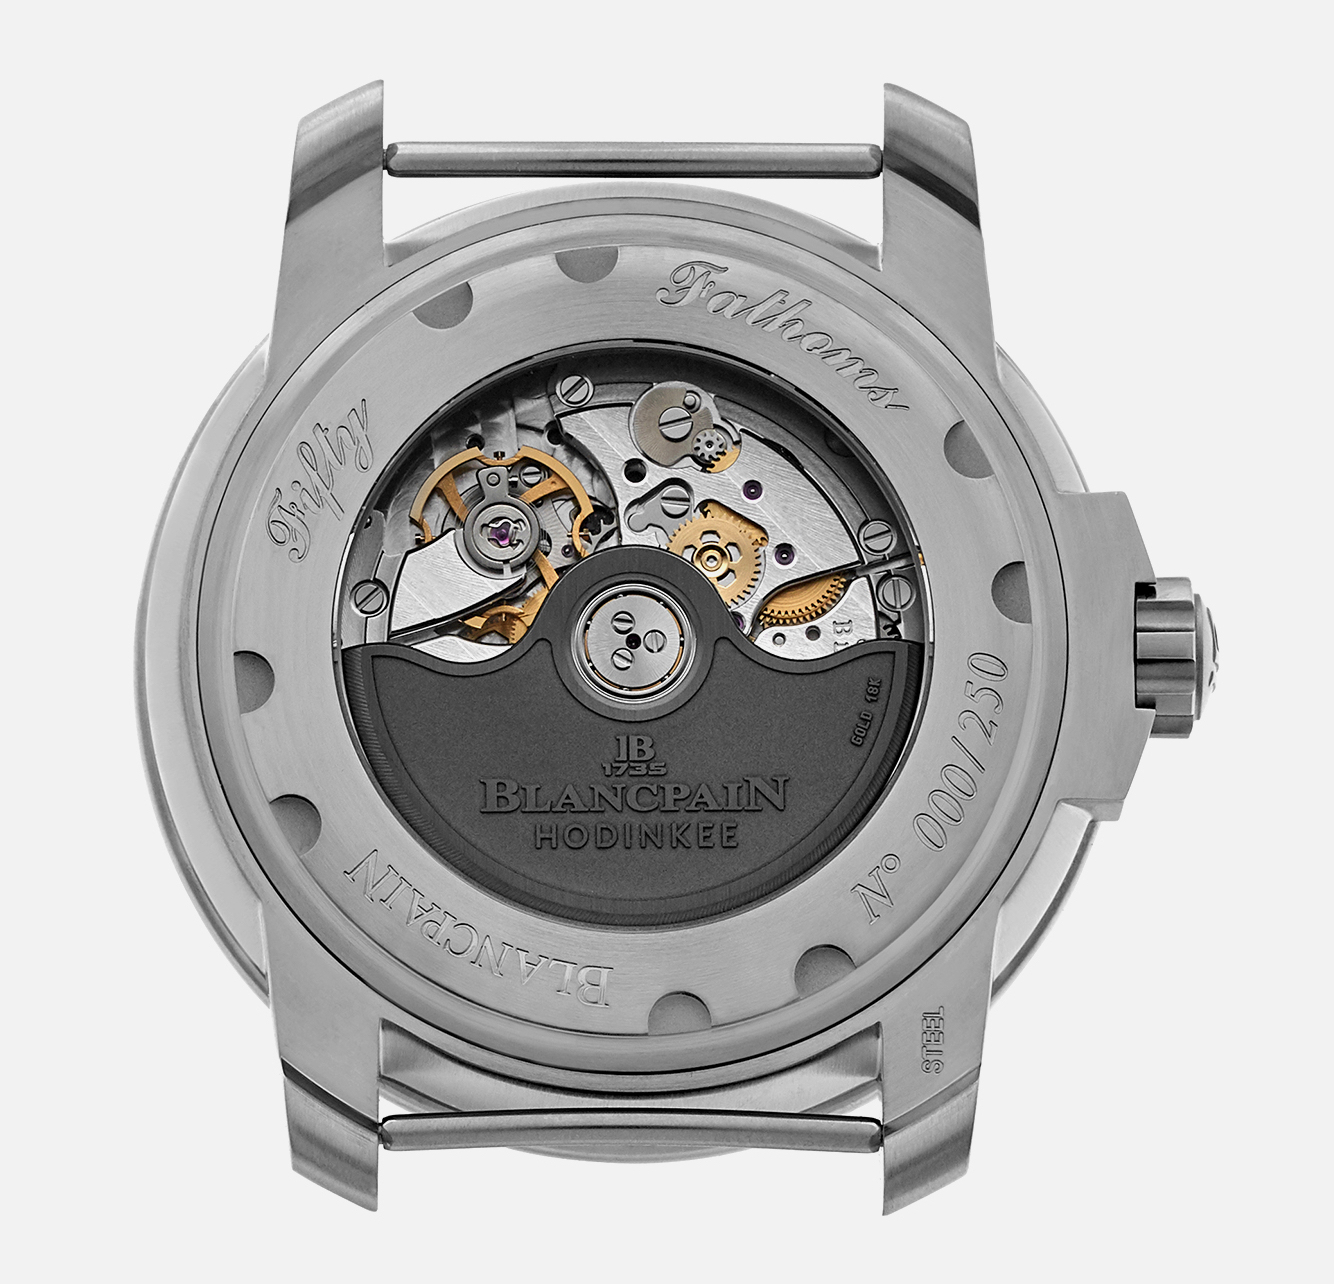 Blancpain Fifty Fathoms MIL-SPEC Hodinkee Limited Edition caseback